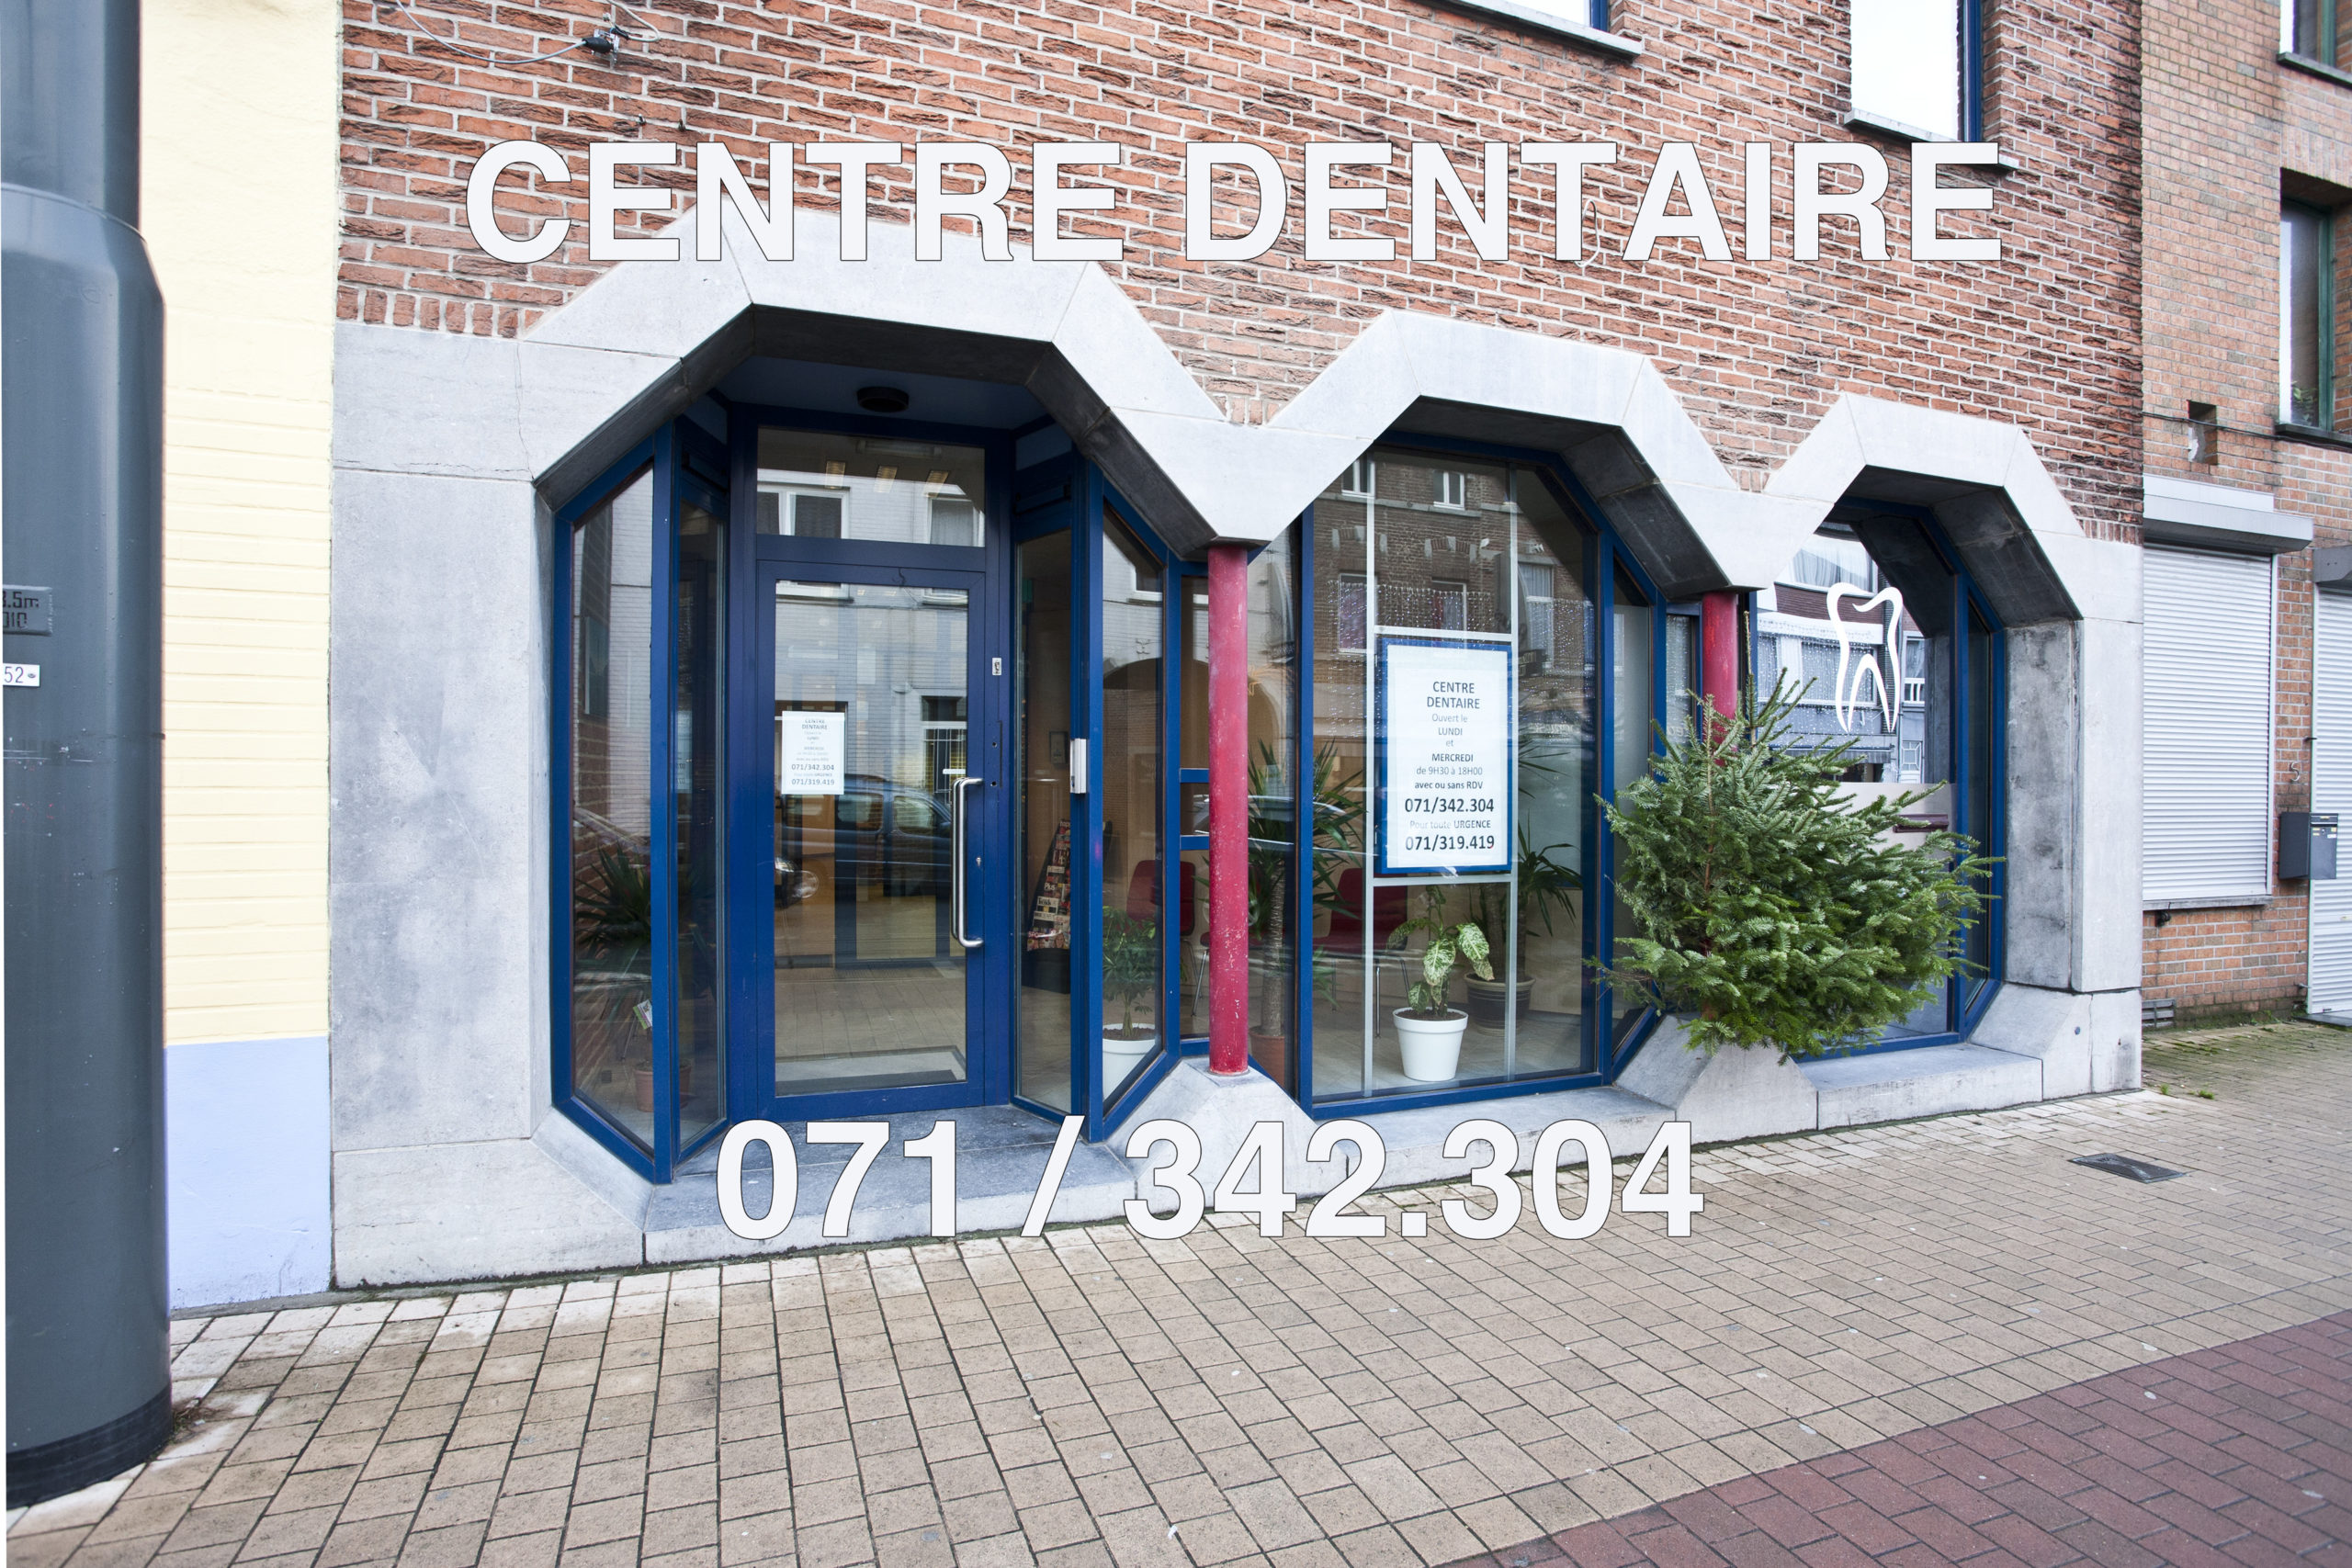 https://www.centre-dentaire-dampremy.be/wp-content/uploads/2021/10/MG_6037-scaled.jpg